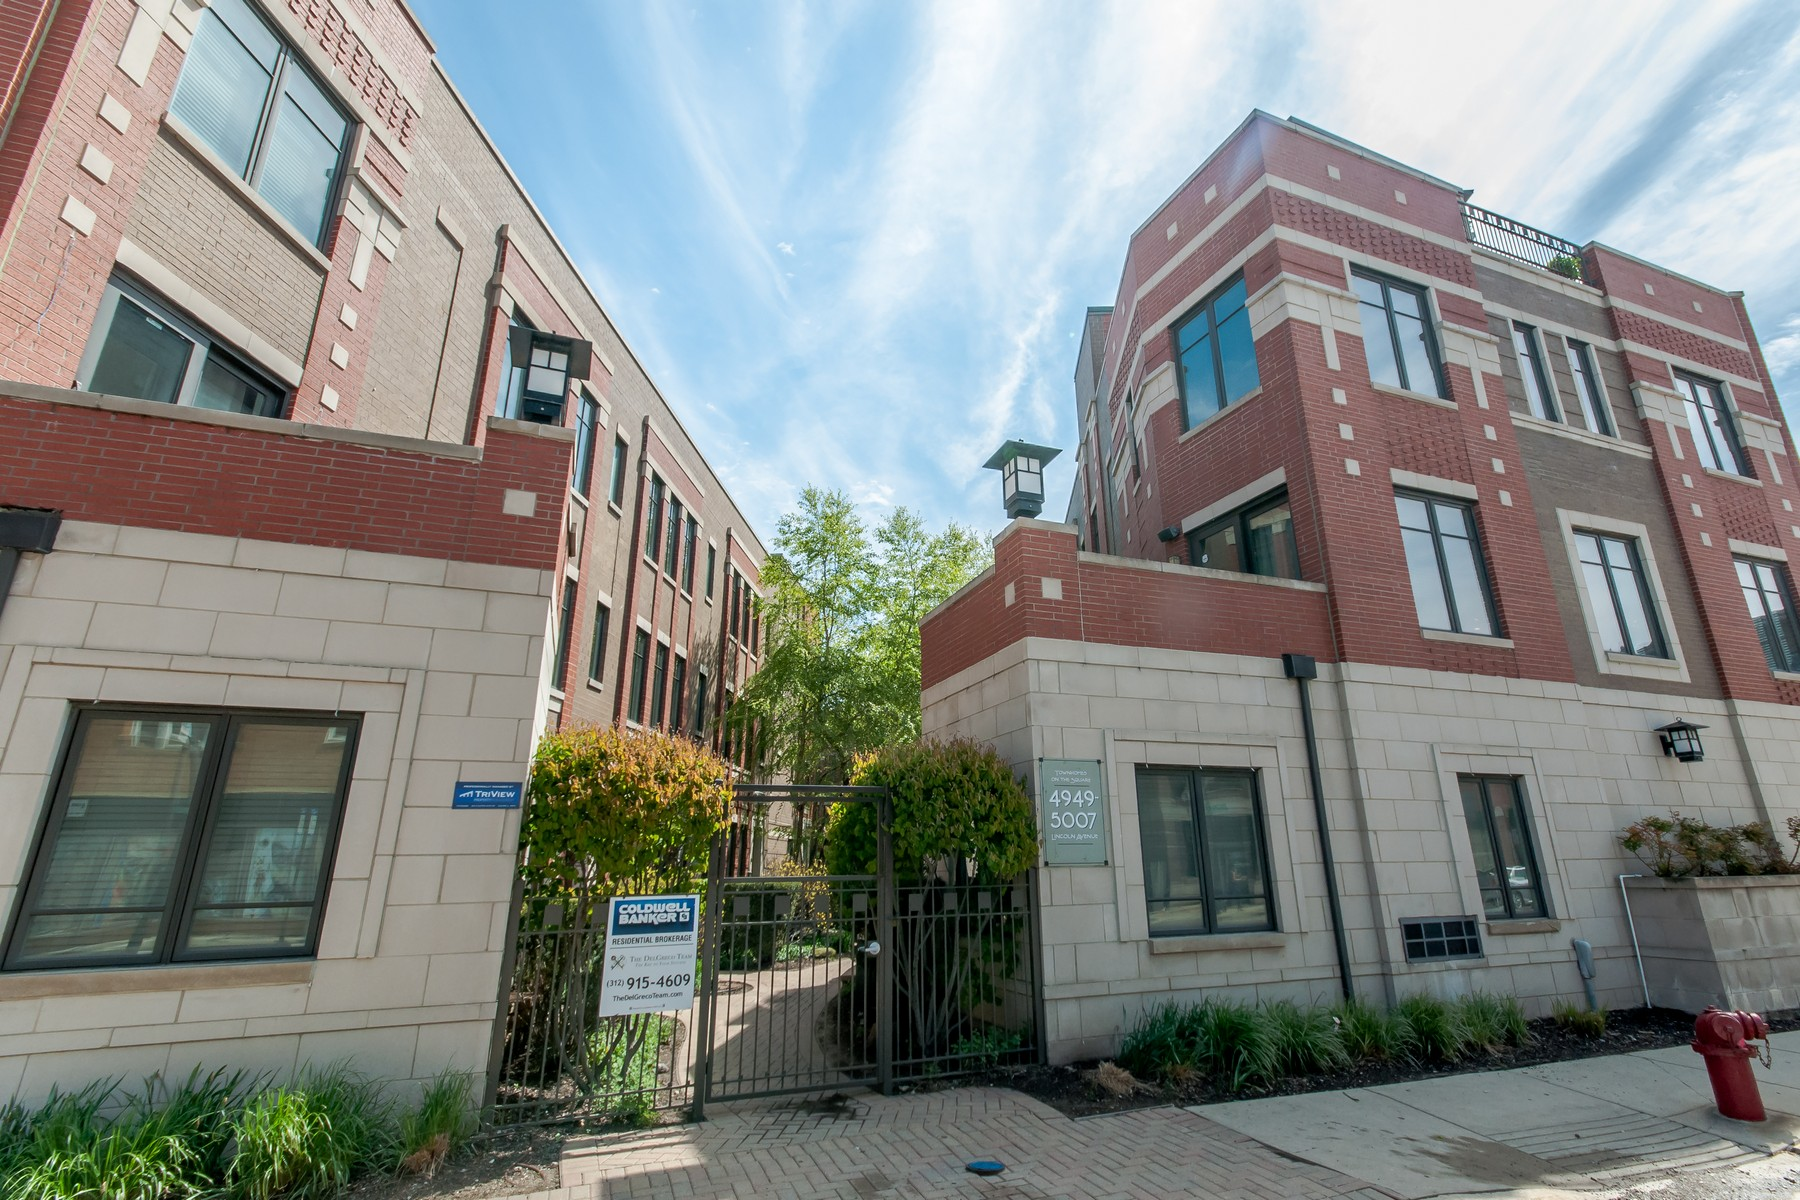 Townhouse for Sale at Townhomes on the Square 4949 N Lincoln Avenue Unit 1 Lincoln Square, Chicago, Illinois, 60625 United States